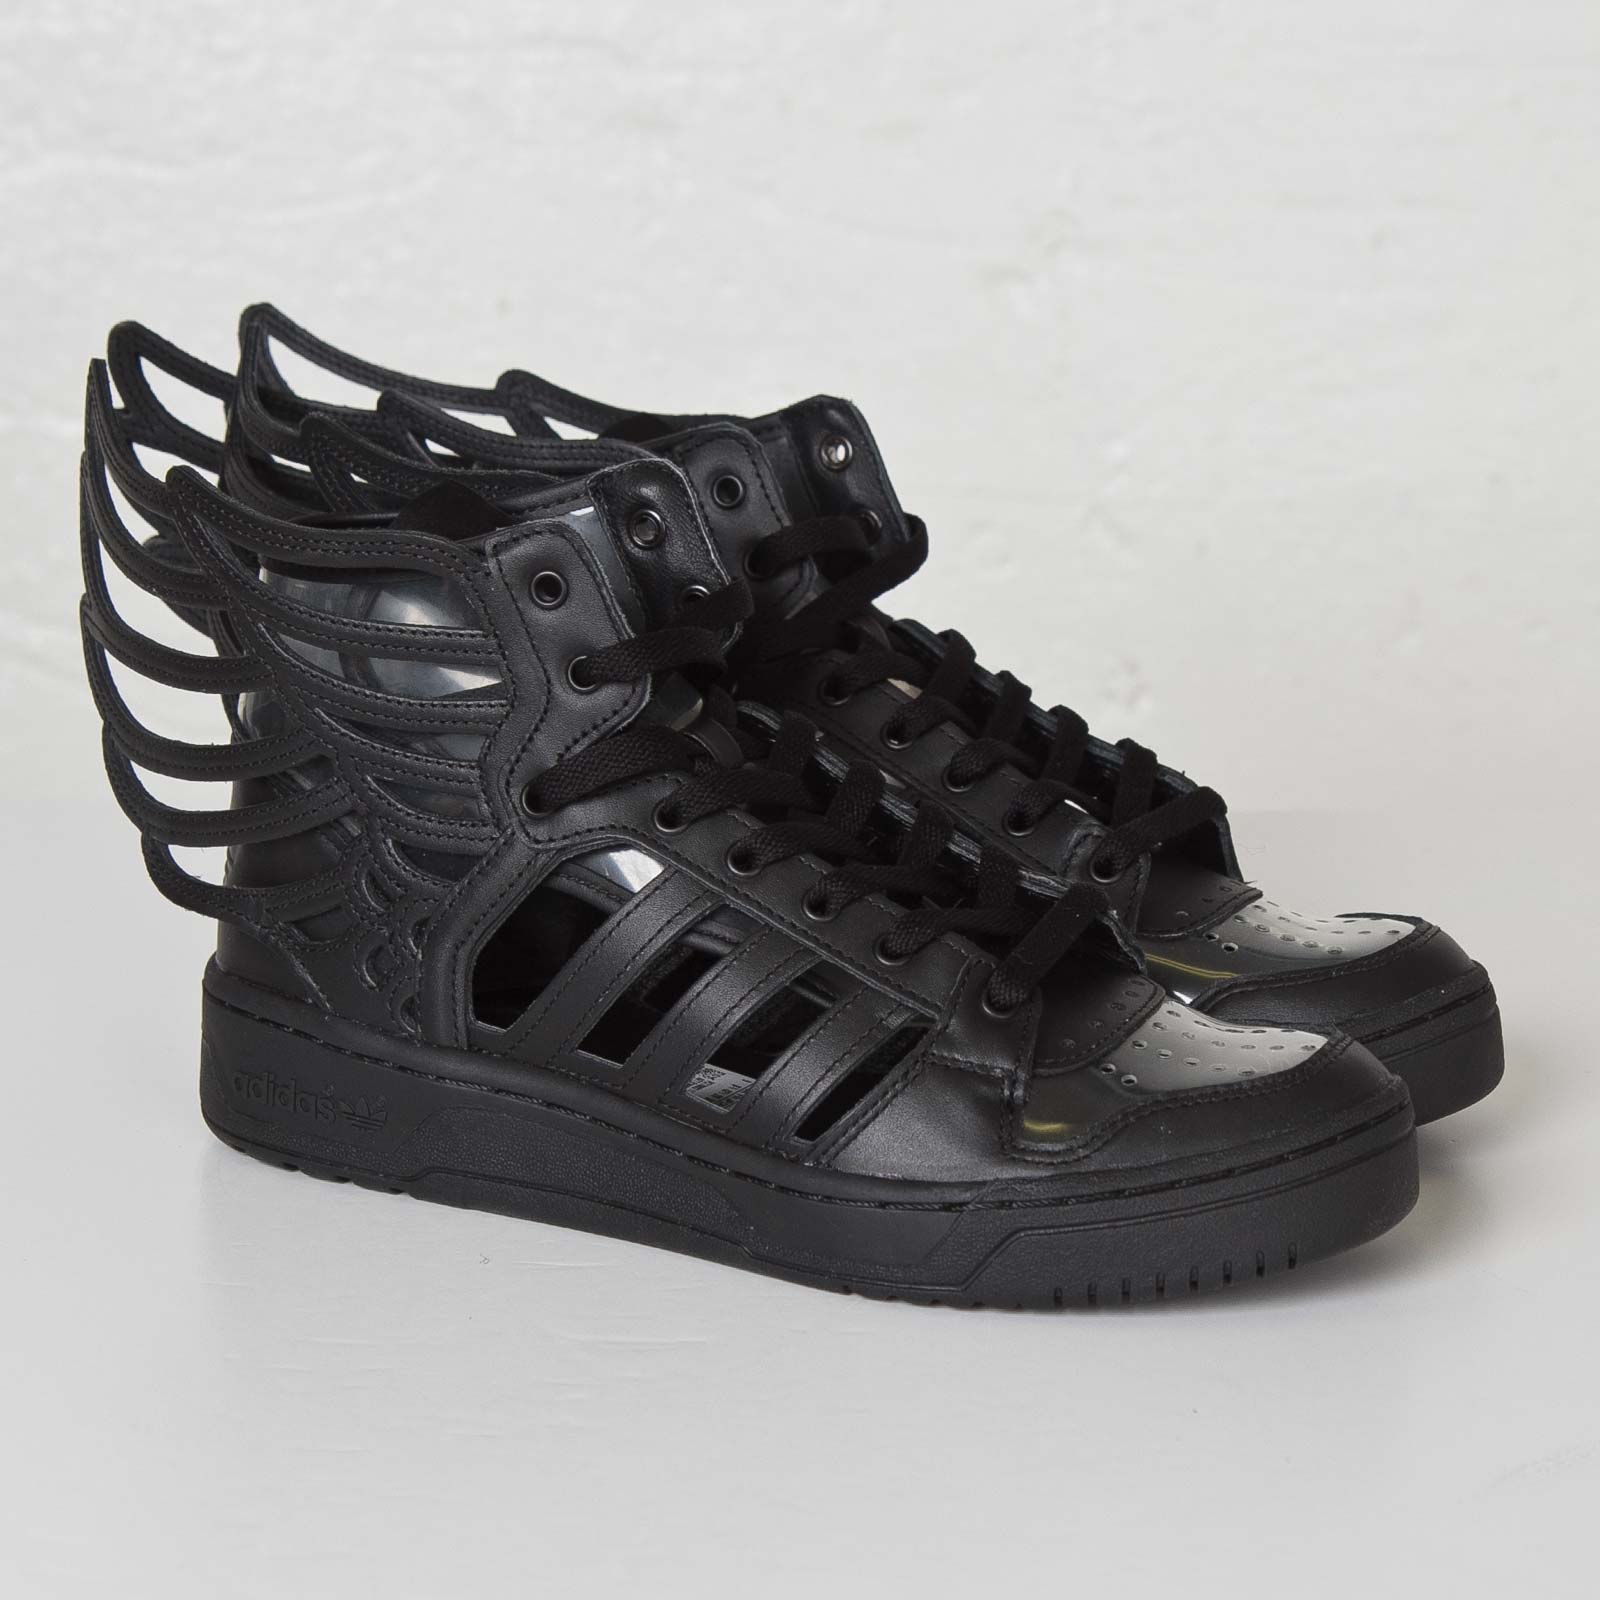 Adidas Originals by Jeremy Scott: Wings Cut Out